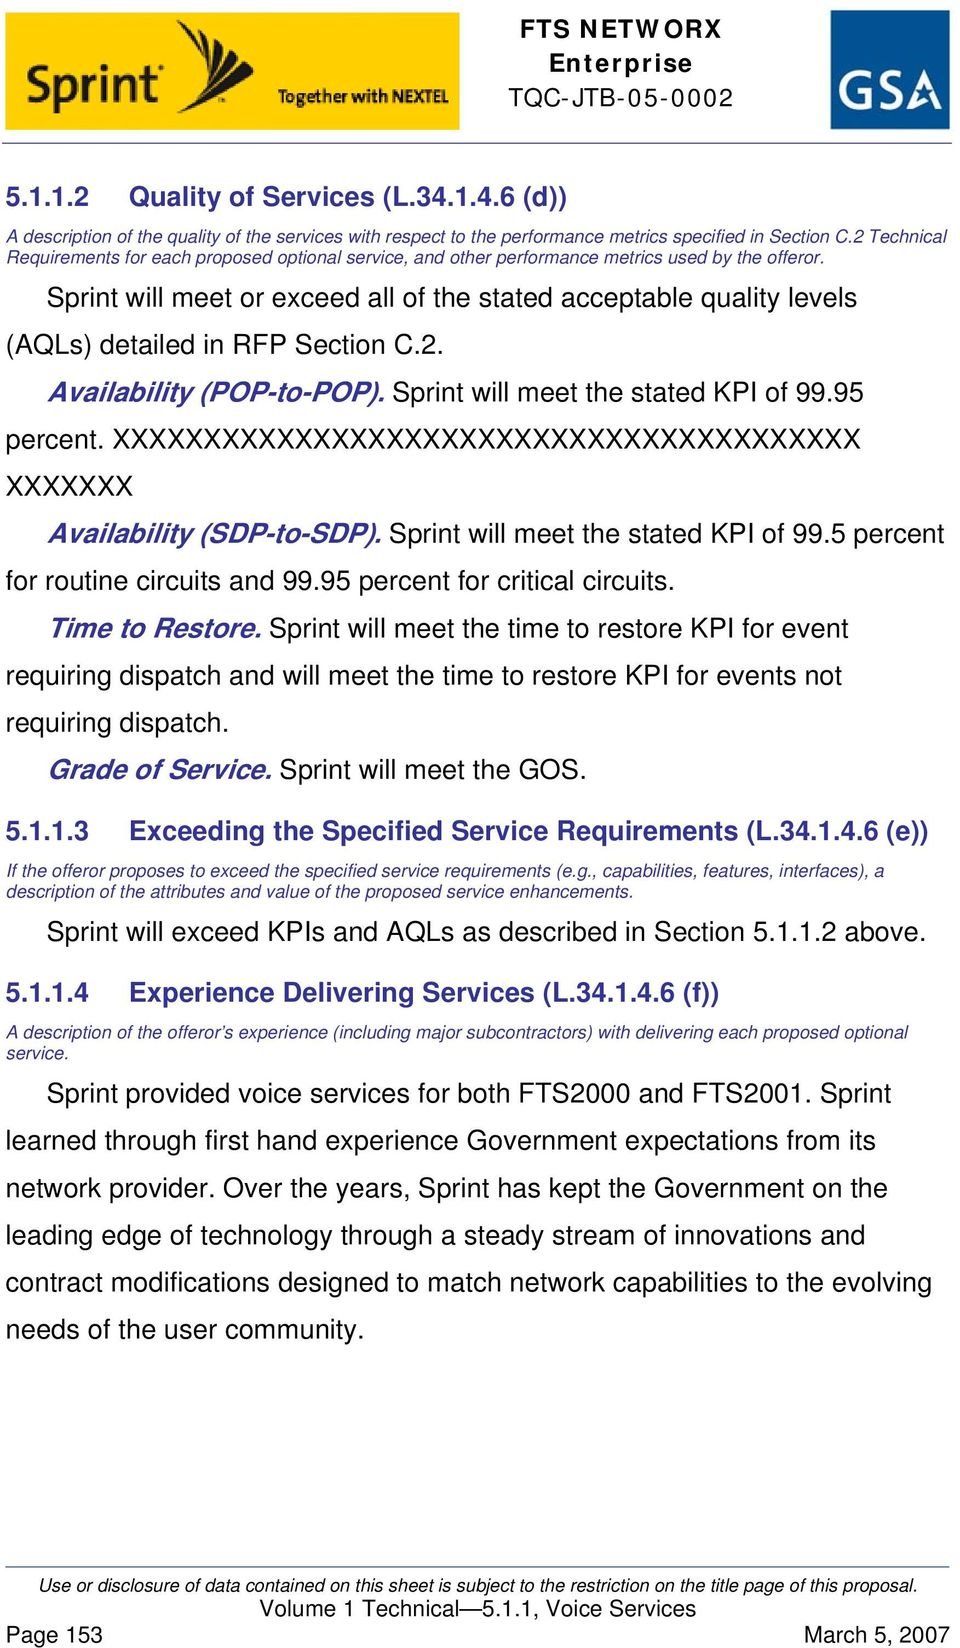 Sprint will meet or exceed all of the stated acceptable quality levels (AQLs) detailed in RFP Section C.2. Availability (POP-to-POP). Sprint will meet the stated KPI of 99.95 percent.